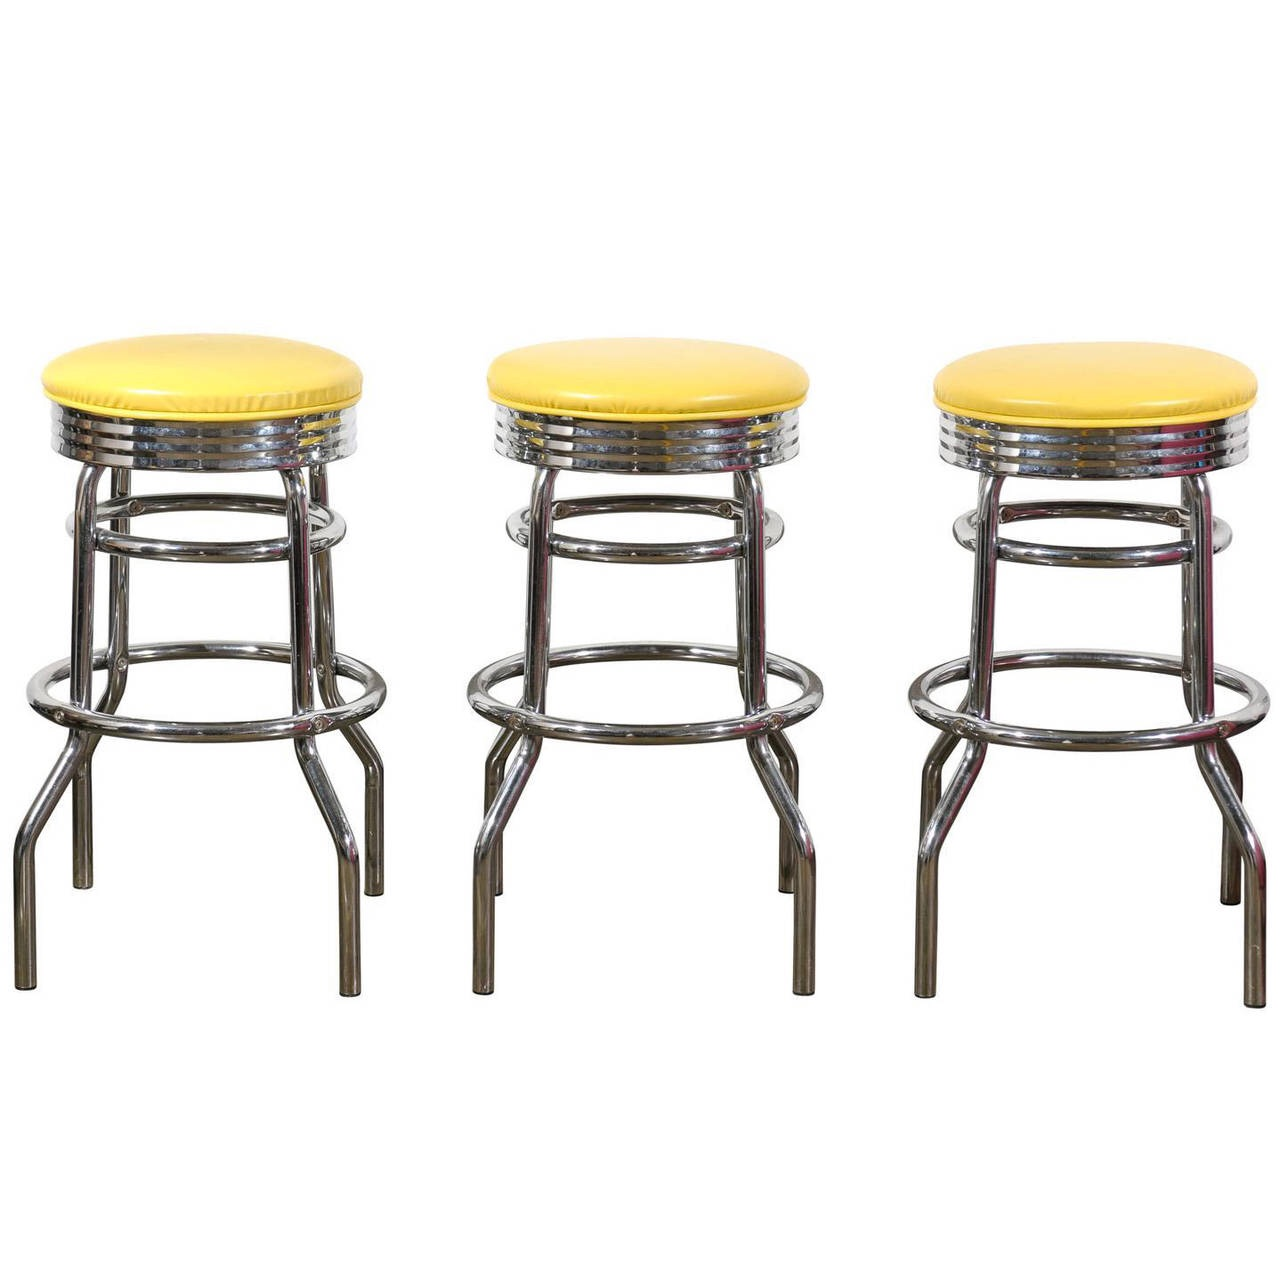 Surprising Set Of Three Midcentury Swiveling Counter Height Barstools Andrewgaddart Wooden Chair Designs For Living Room Andrewgaddartcom